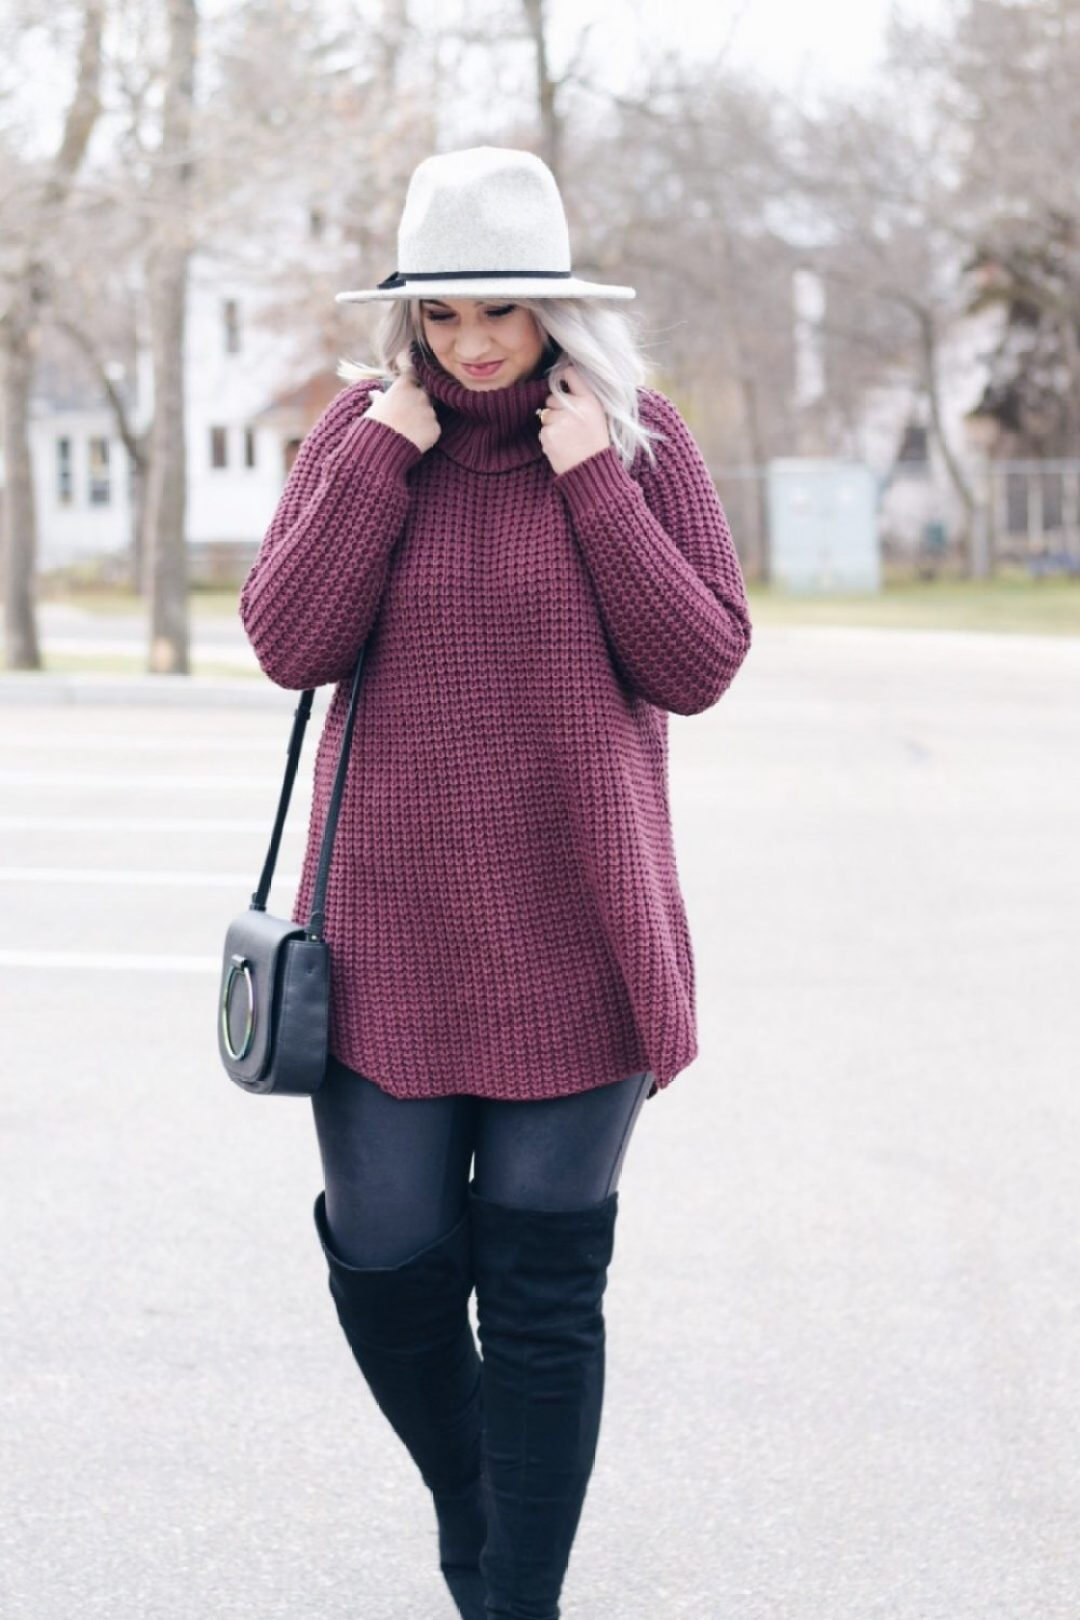 Turtleneck sweater dress with OTK boots